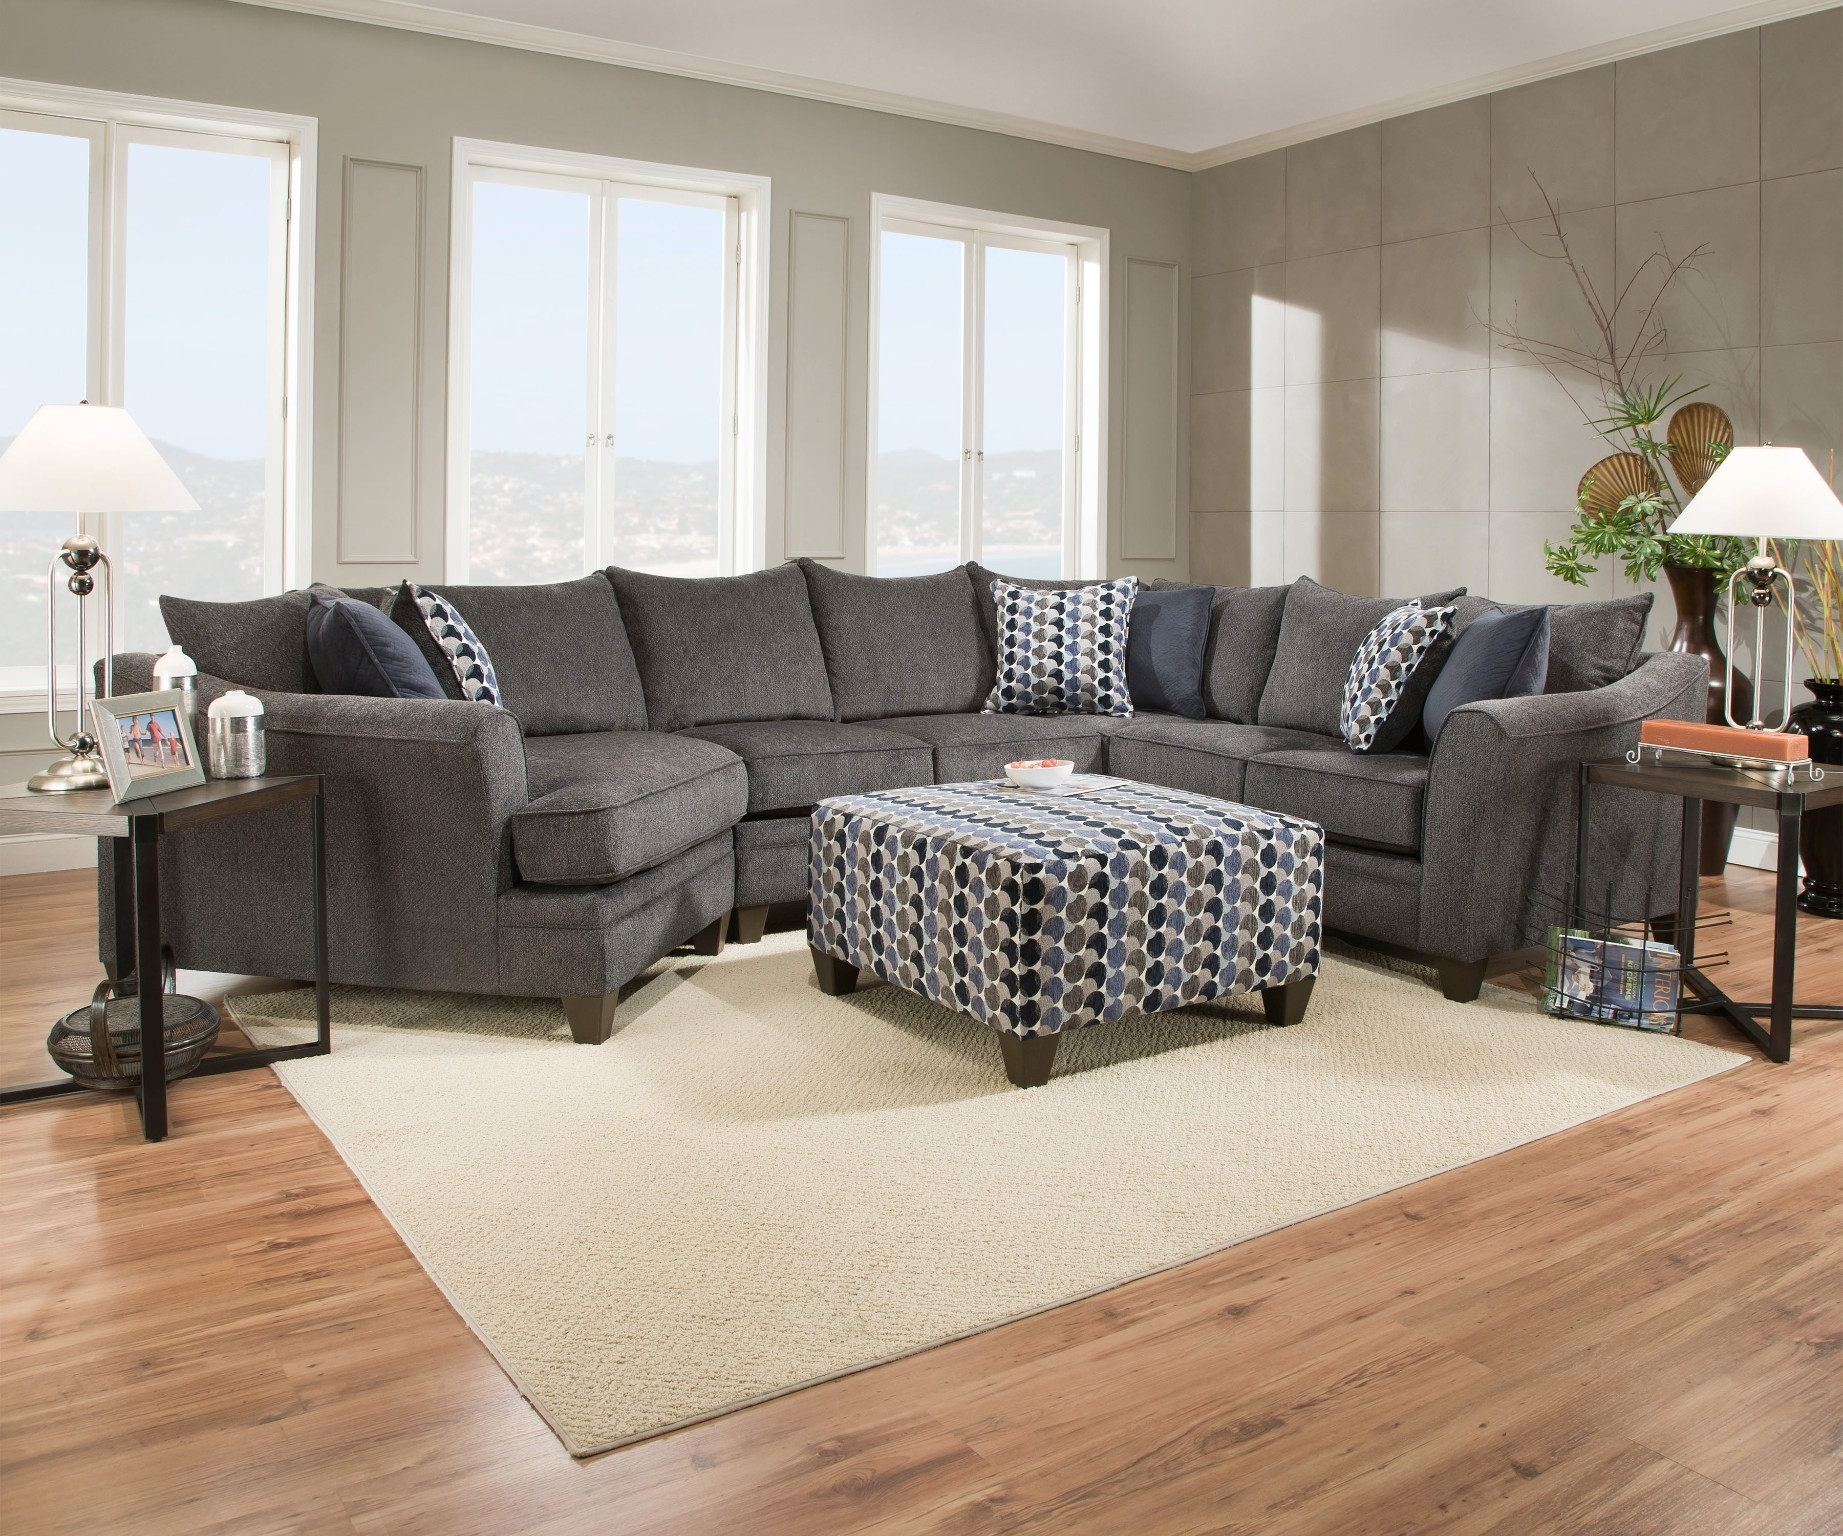 Albany Slate 3 Piece Sectional Quality Simmons Upholstery With with regard to Simmons Chaise Sofas (Image 3 of 10)